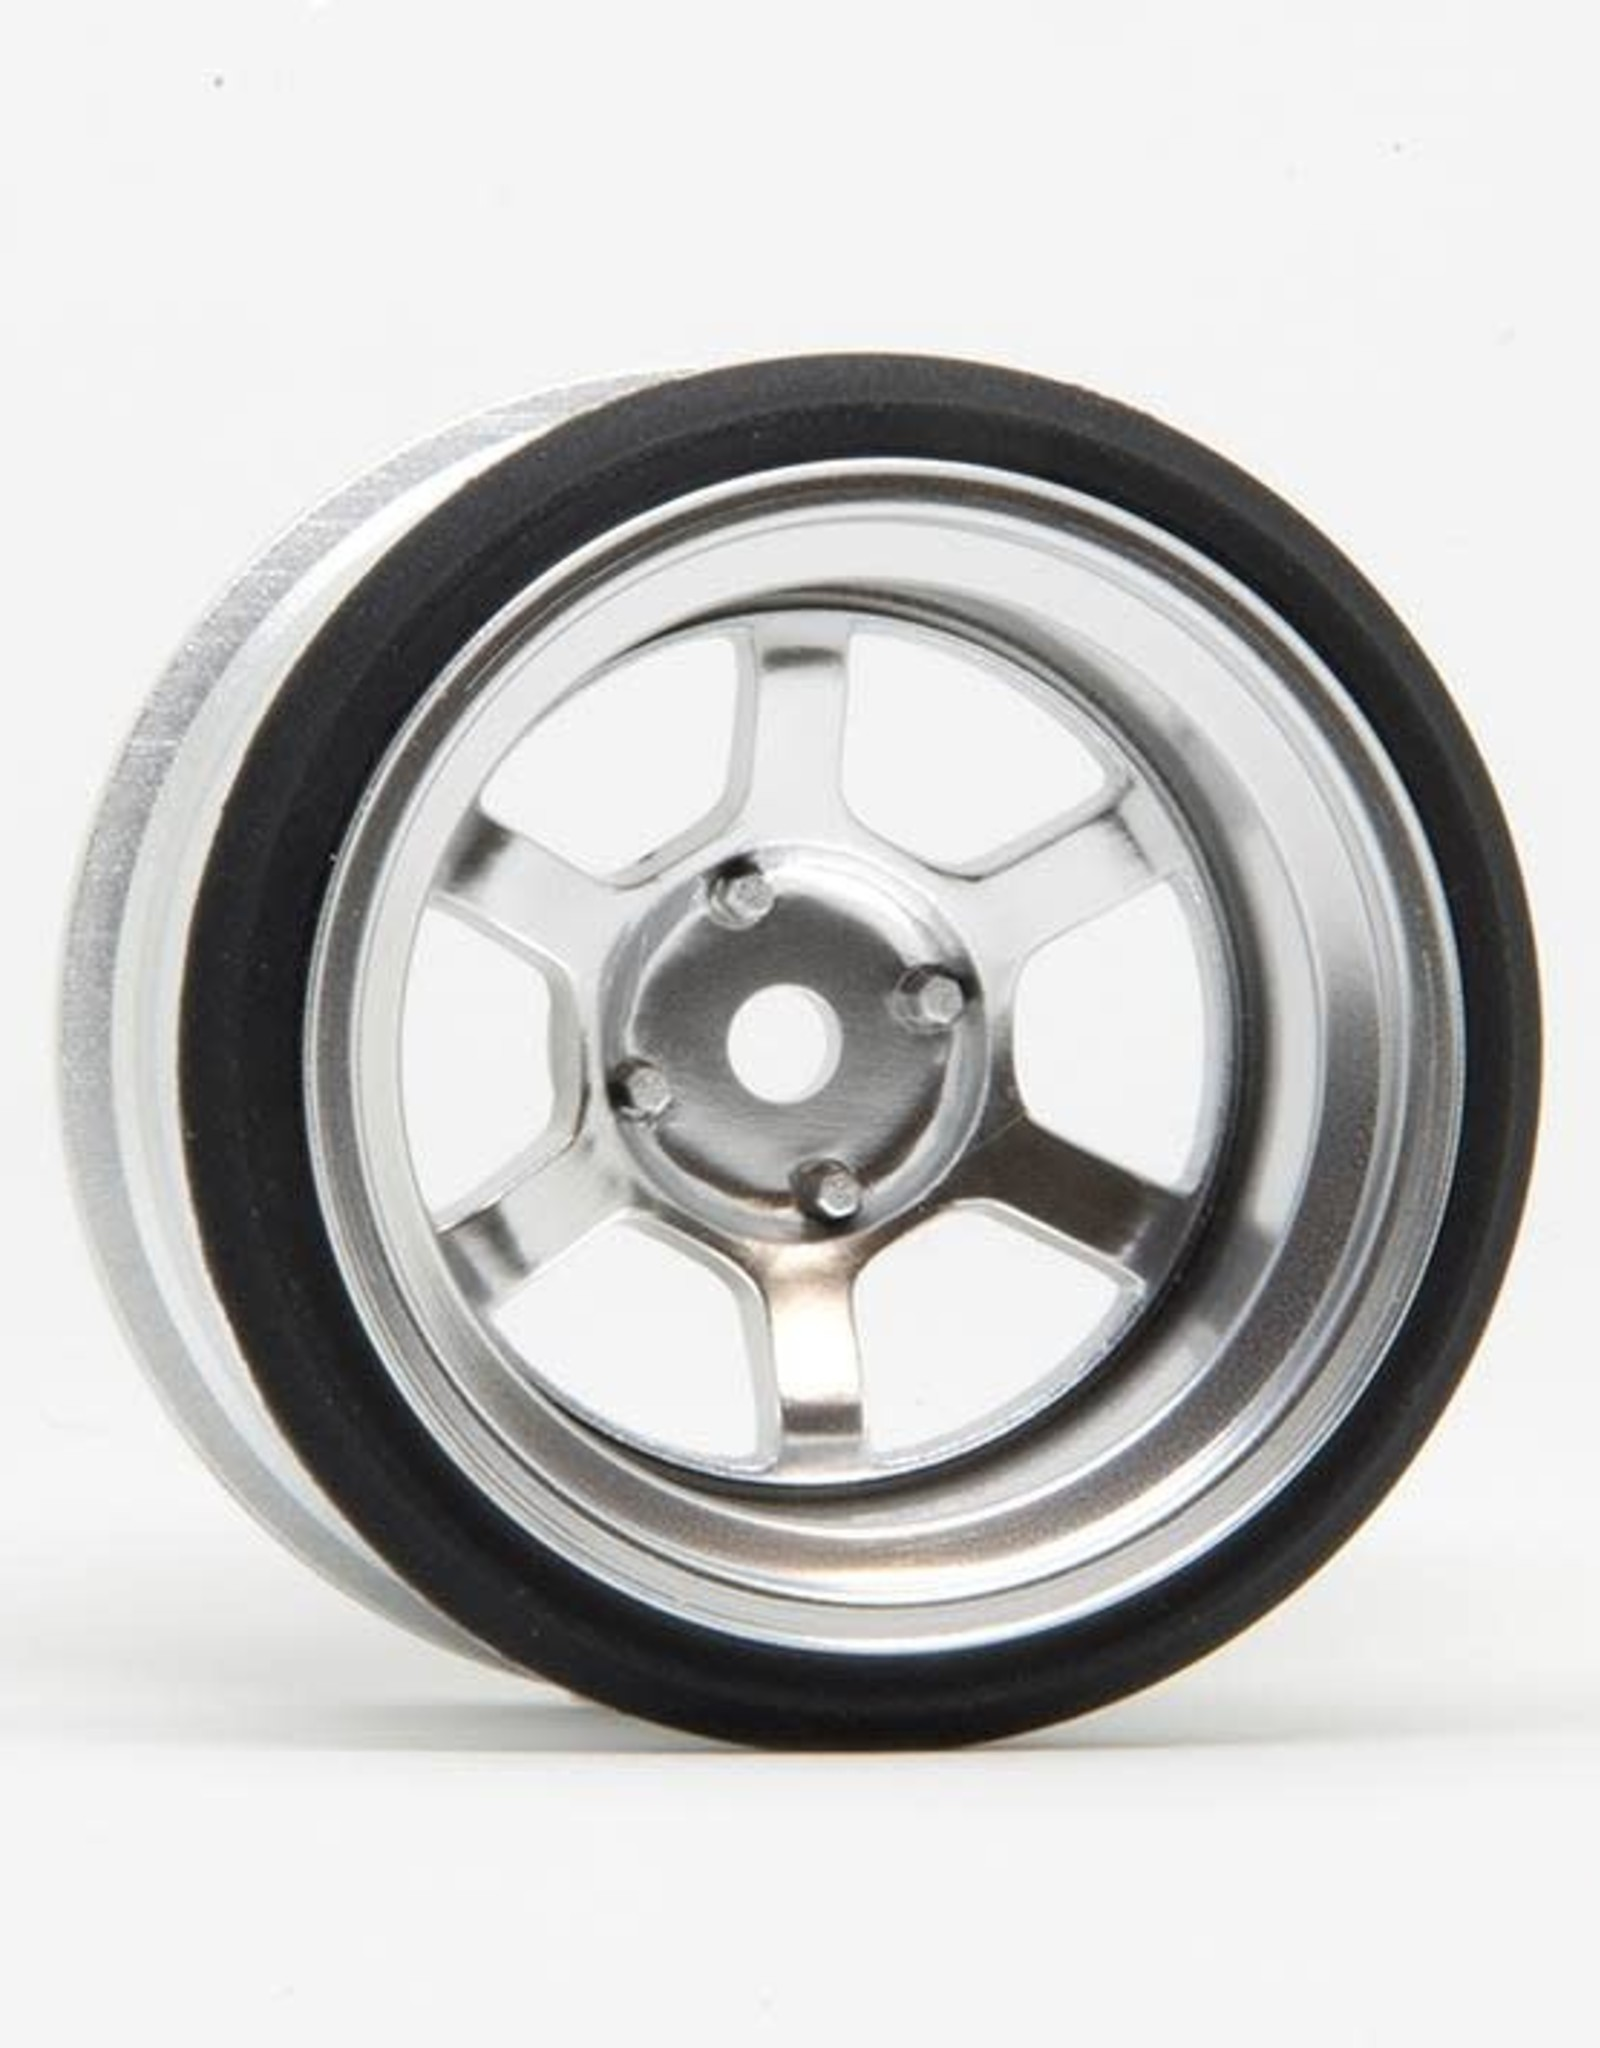 Scale Dynamics SCD10125 V16D 6 spoke offset 10mm Aluminum Silver 10125 by Scale Dynamics